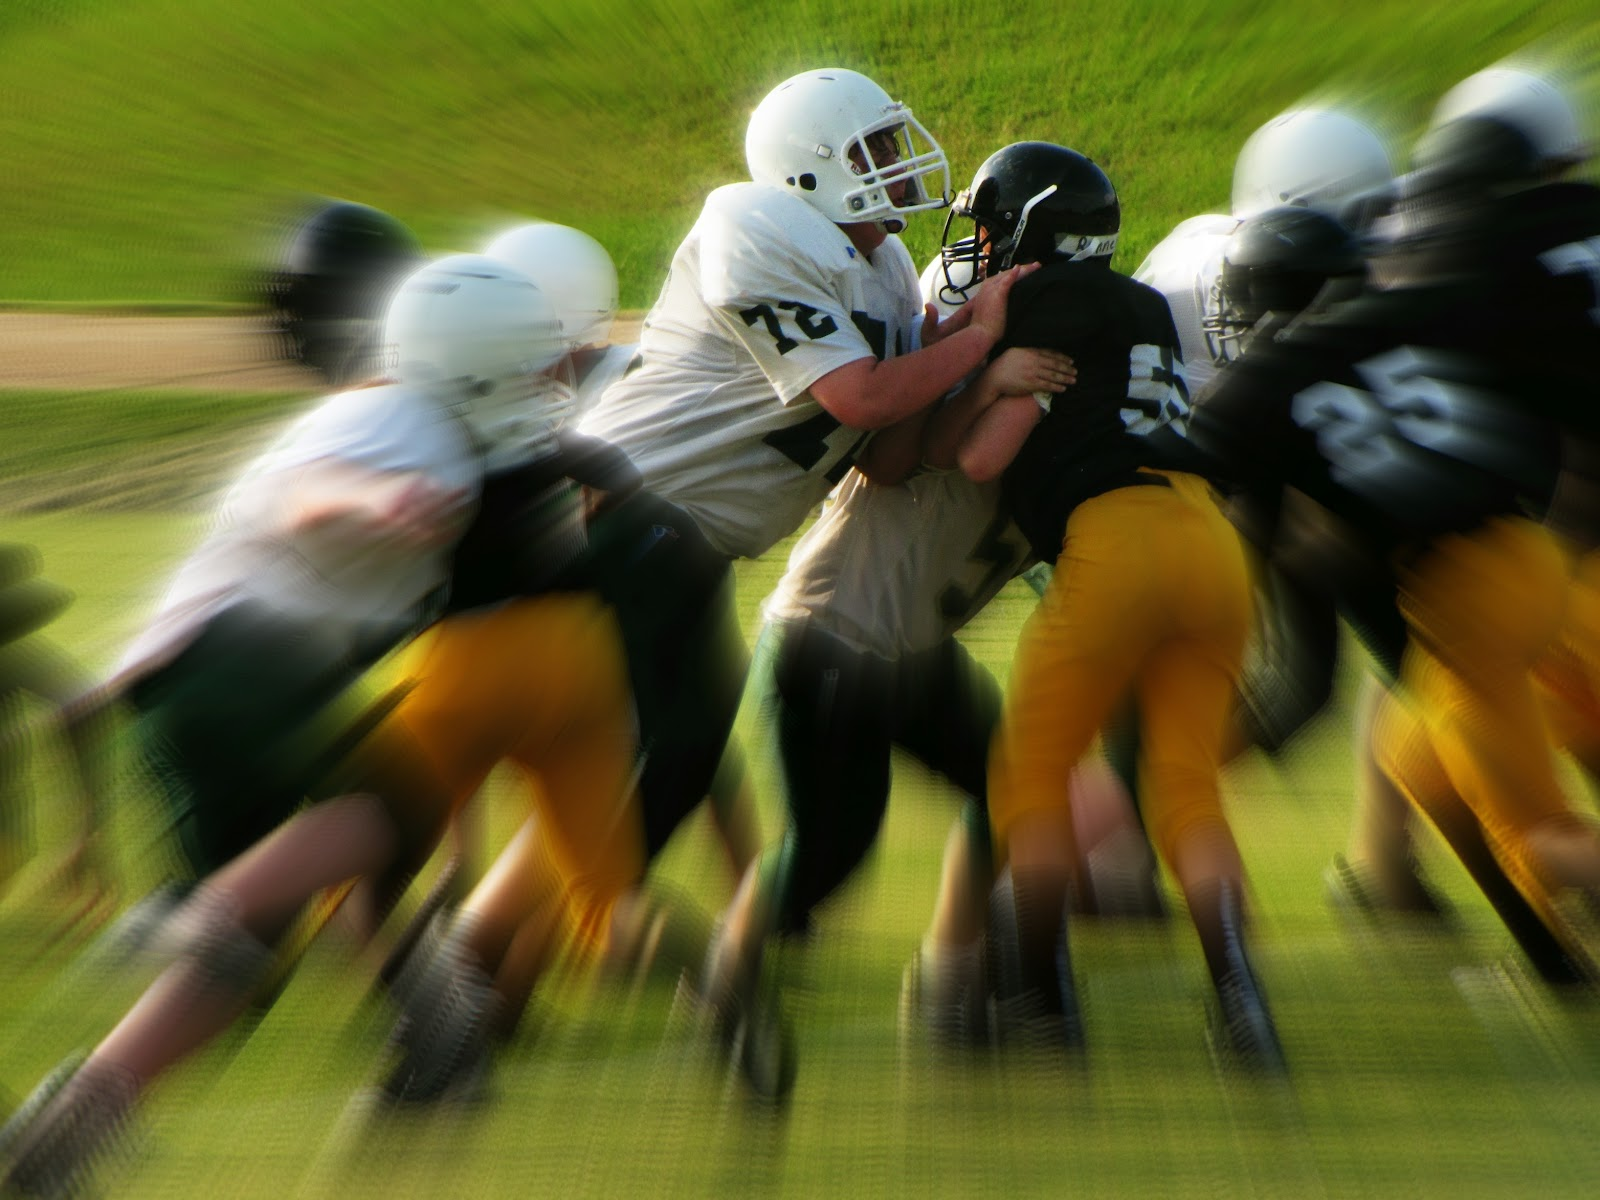 Men in White and Black Playing Football · Free Stock Photo